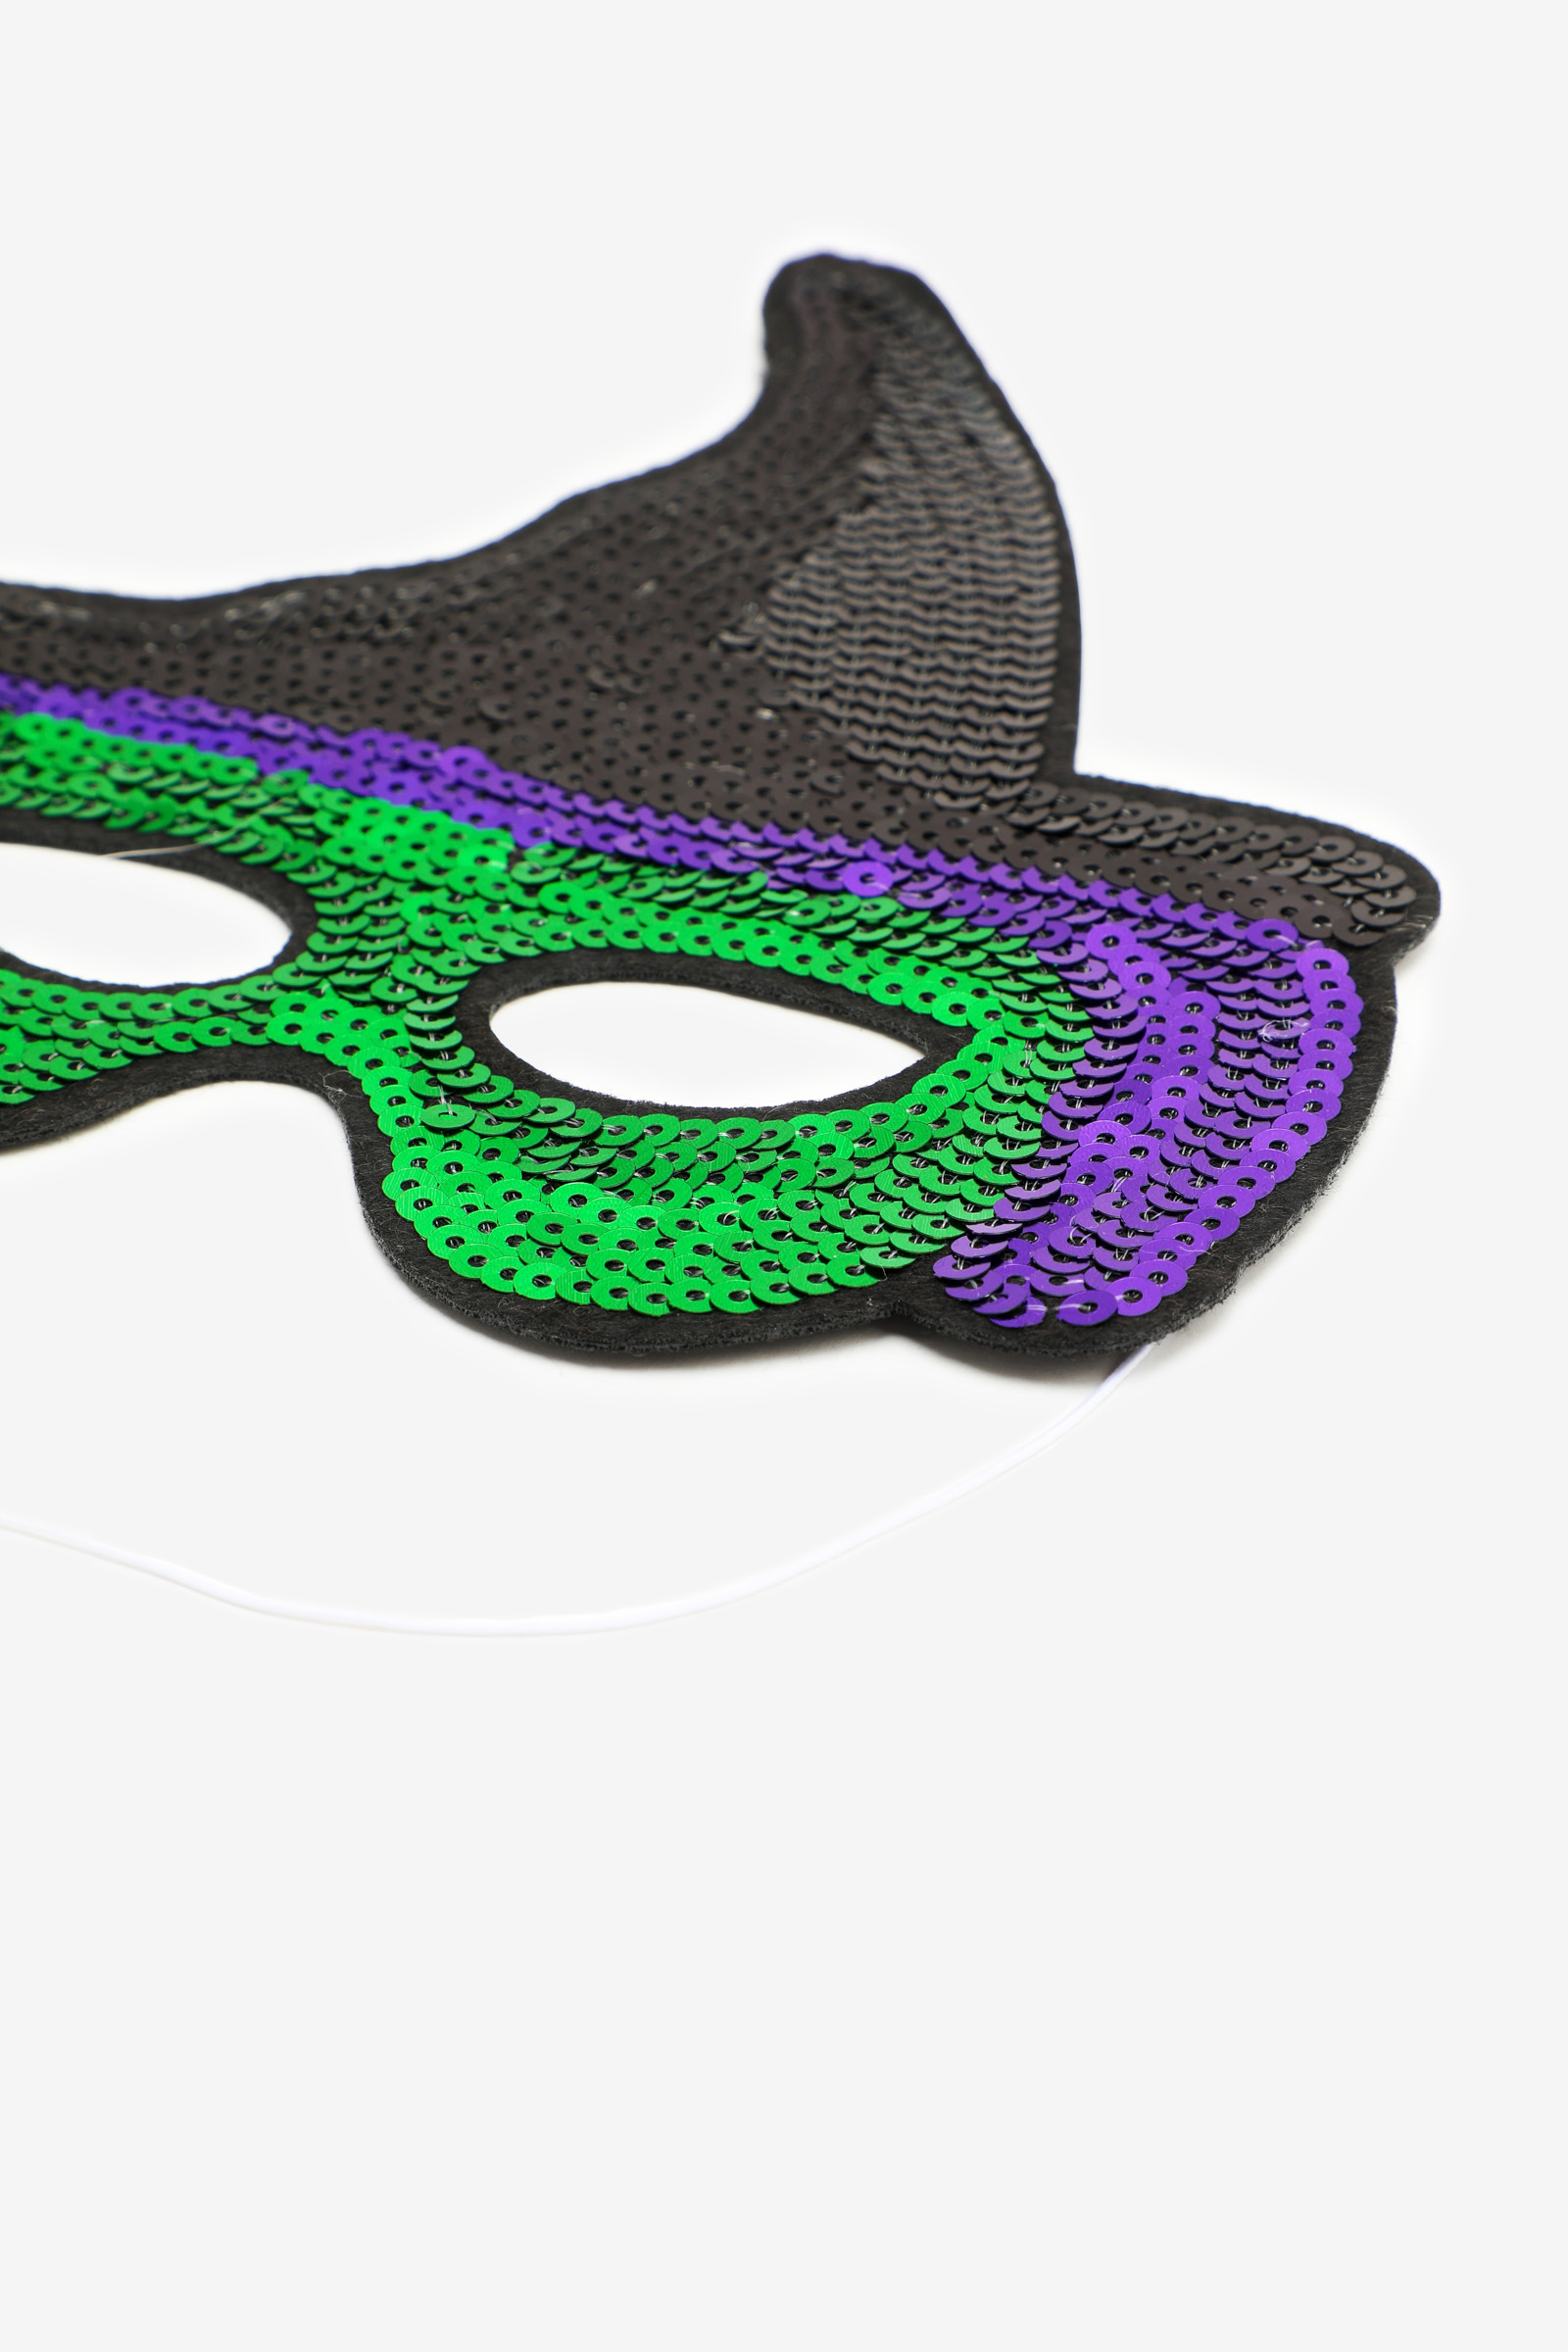 Sequin Witch Halloween Mask